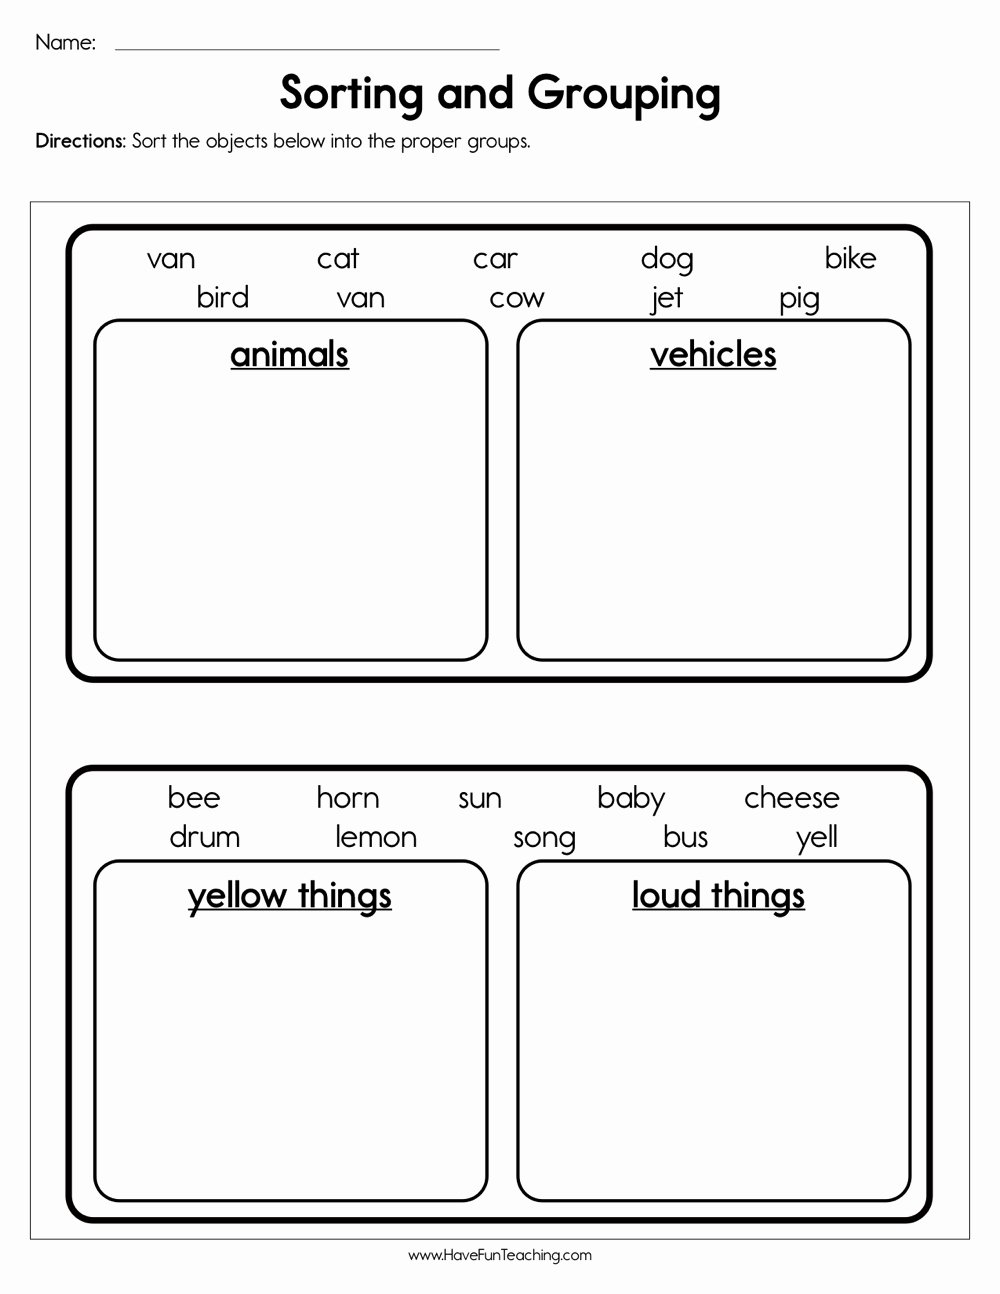 Sorting Worksheets for Preschoolers Best Of sorting and Grouping Worksheet